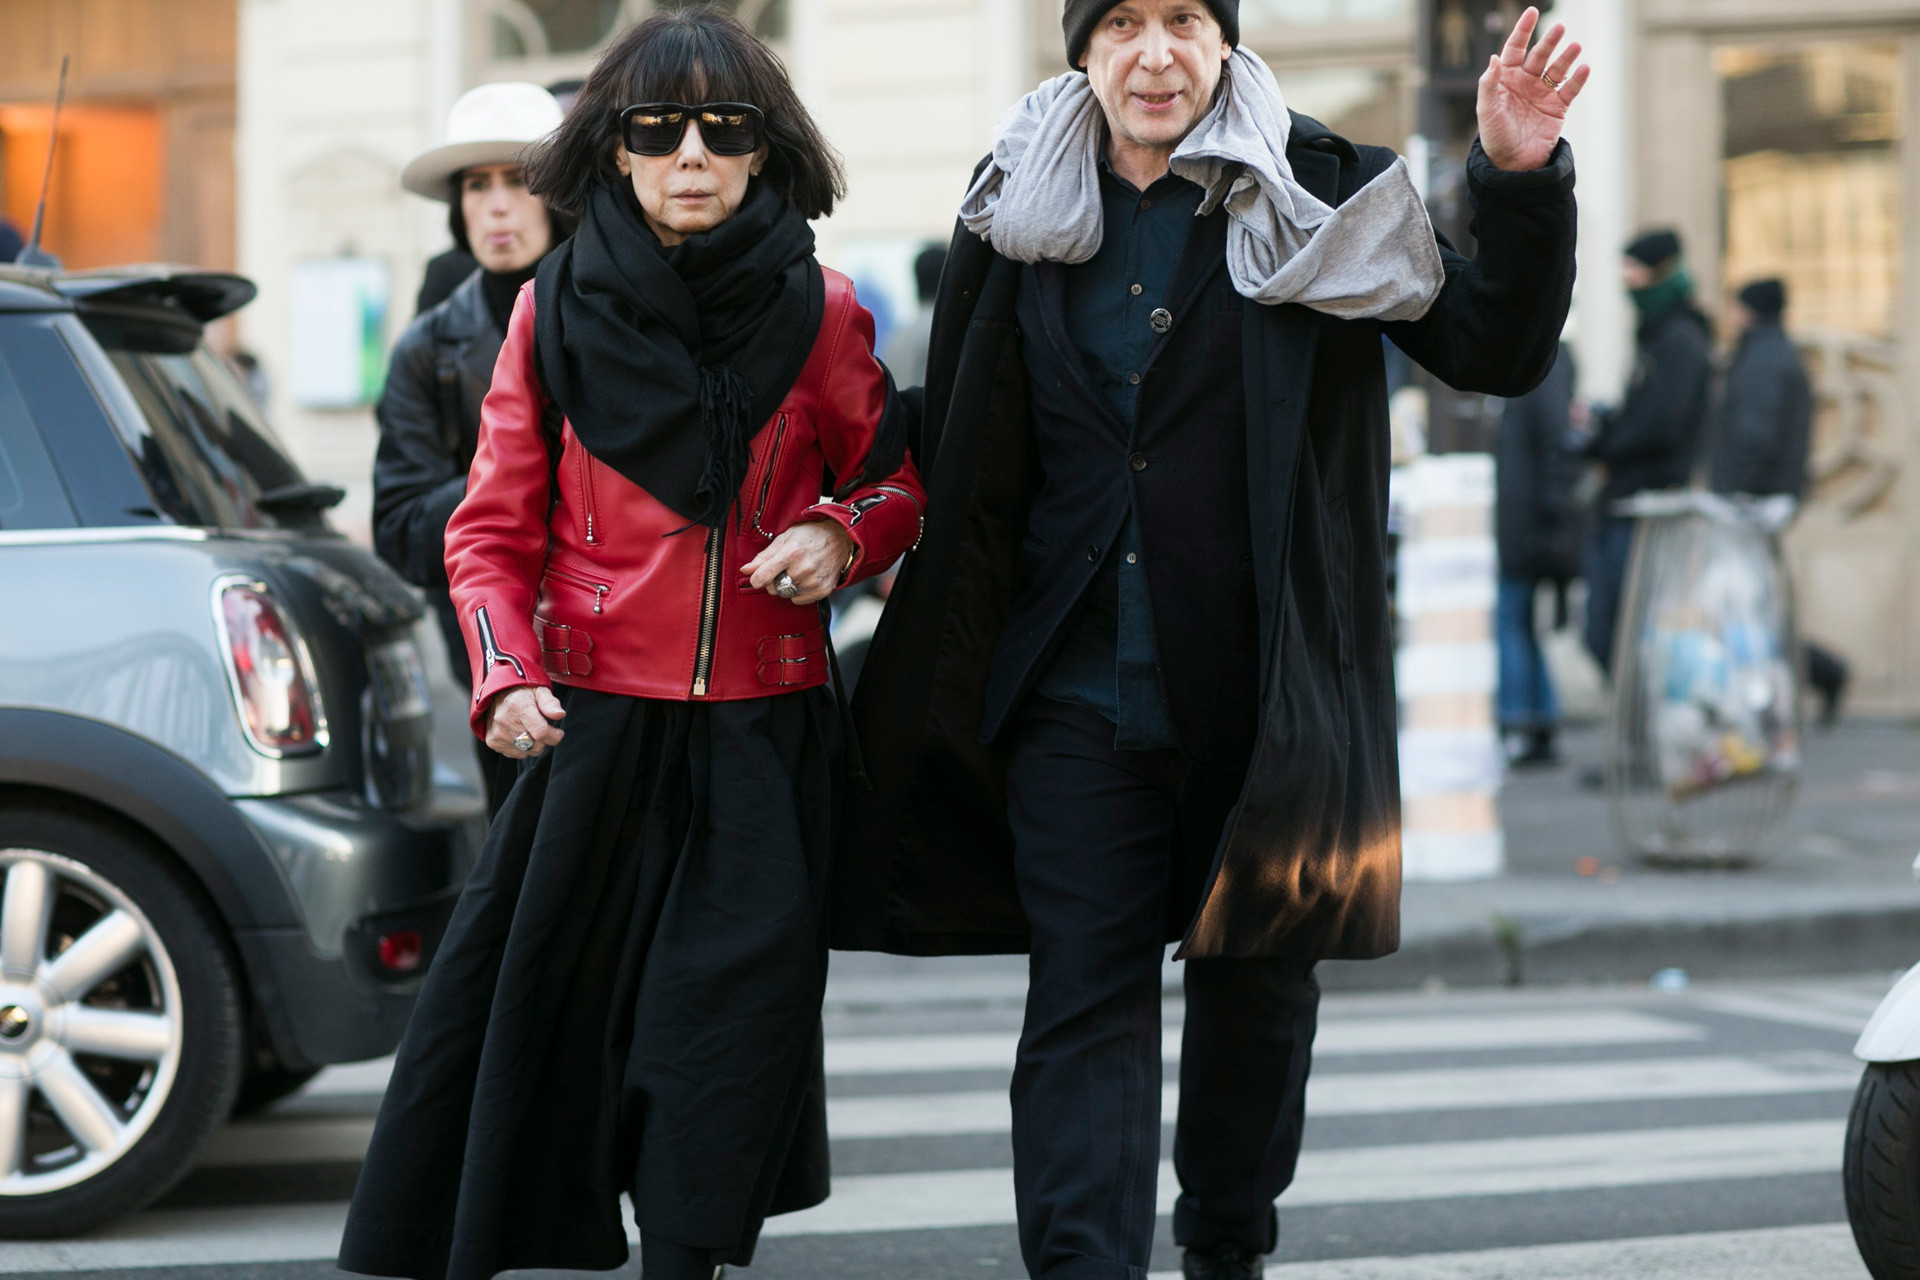 Rei Kawakubo, Comme des Garcons creative director, and Adrian Joffe, Dover Street Market and Comme des Garcons presiden, exit the Gosha Rubchinskiy show on Jan. 21, 2016 in Paris, France.